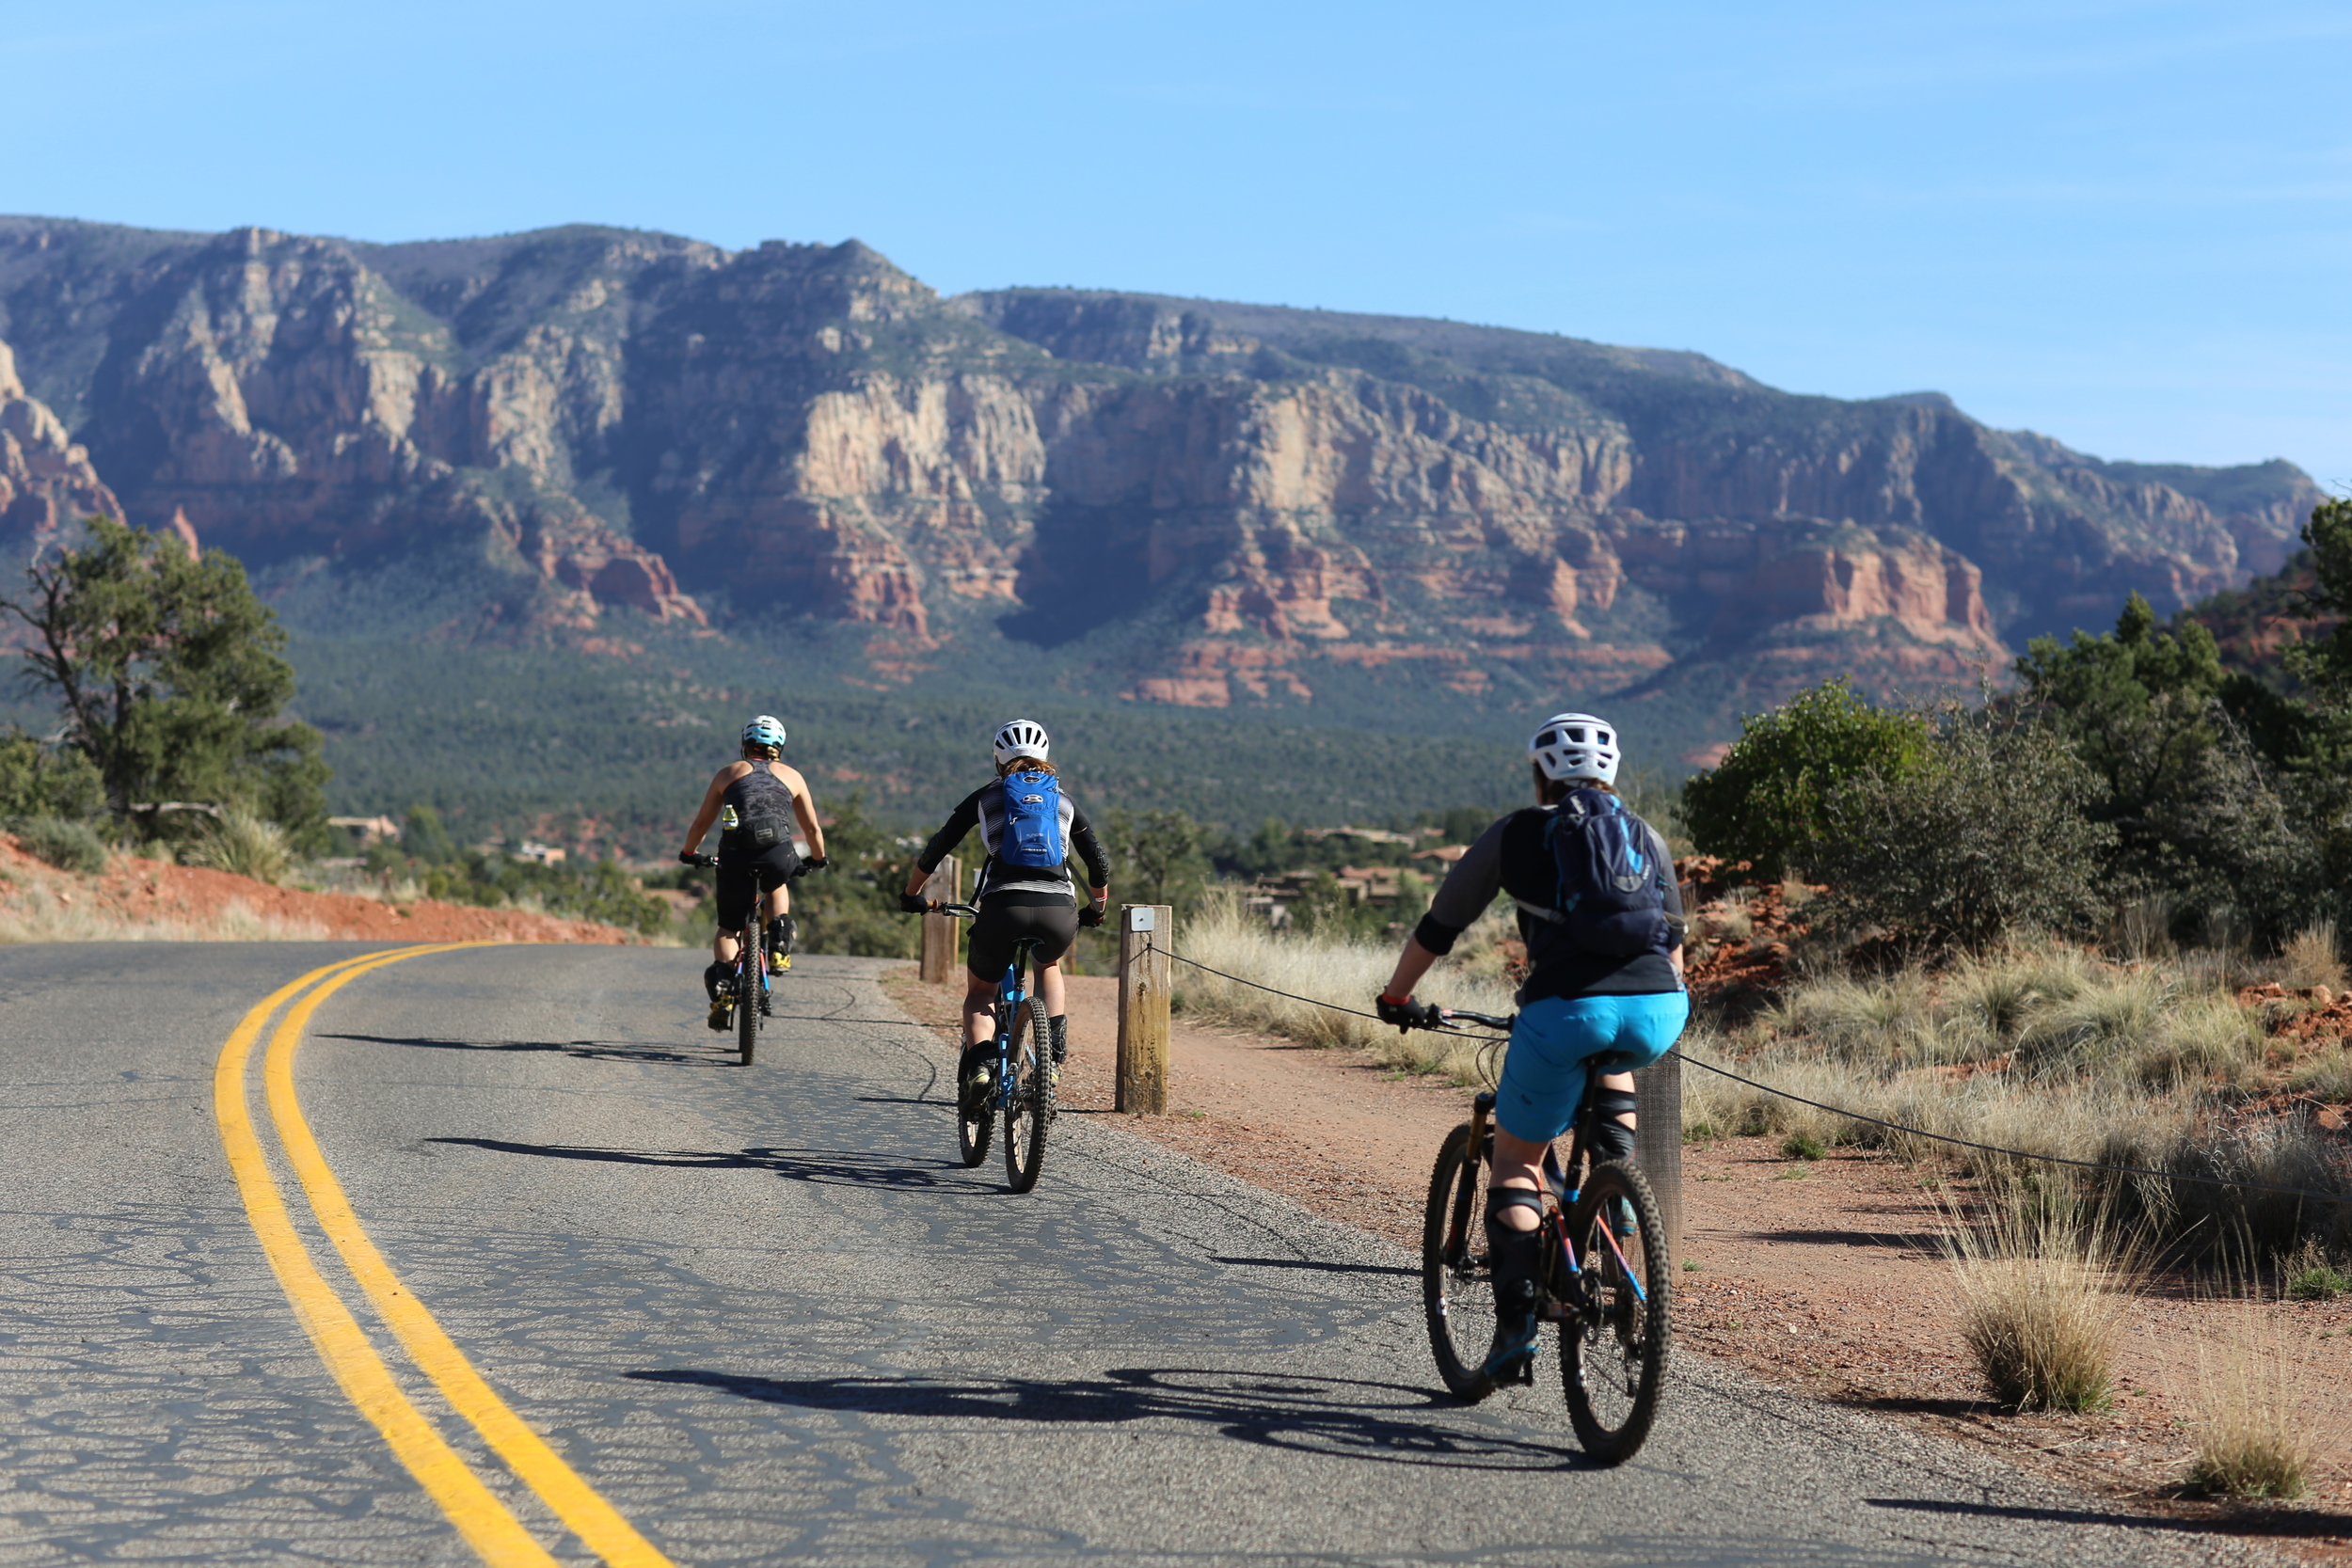 Bikers off to explore the trails around Posse Park, Sedona